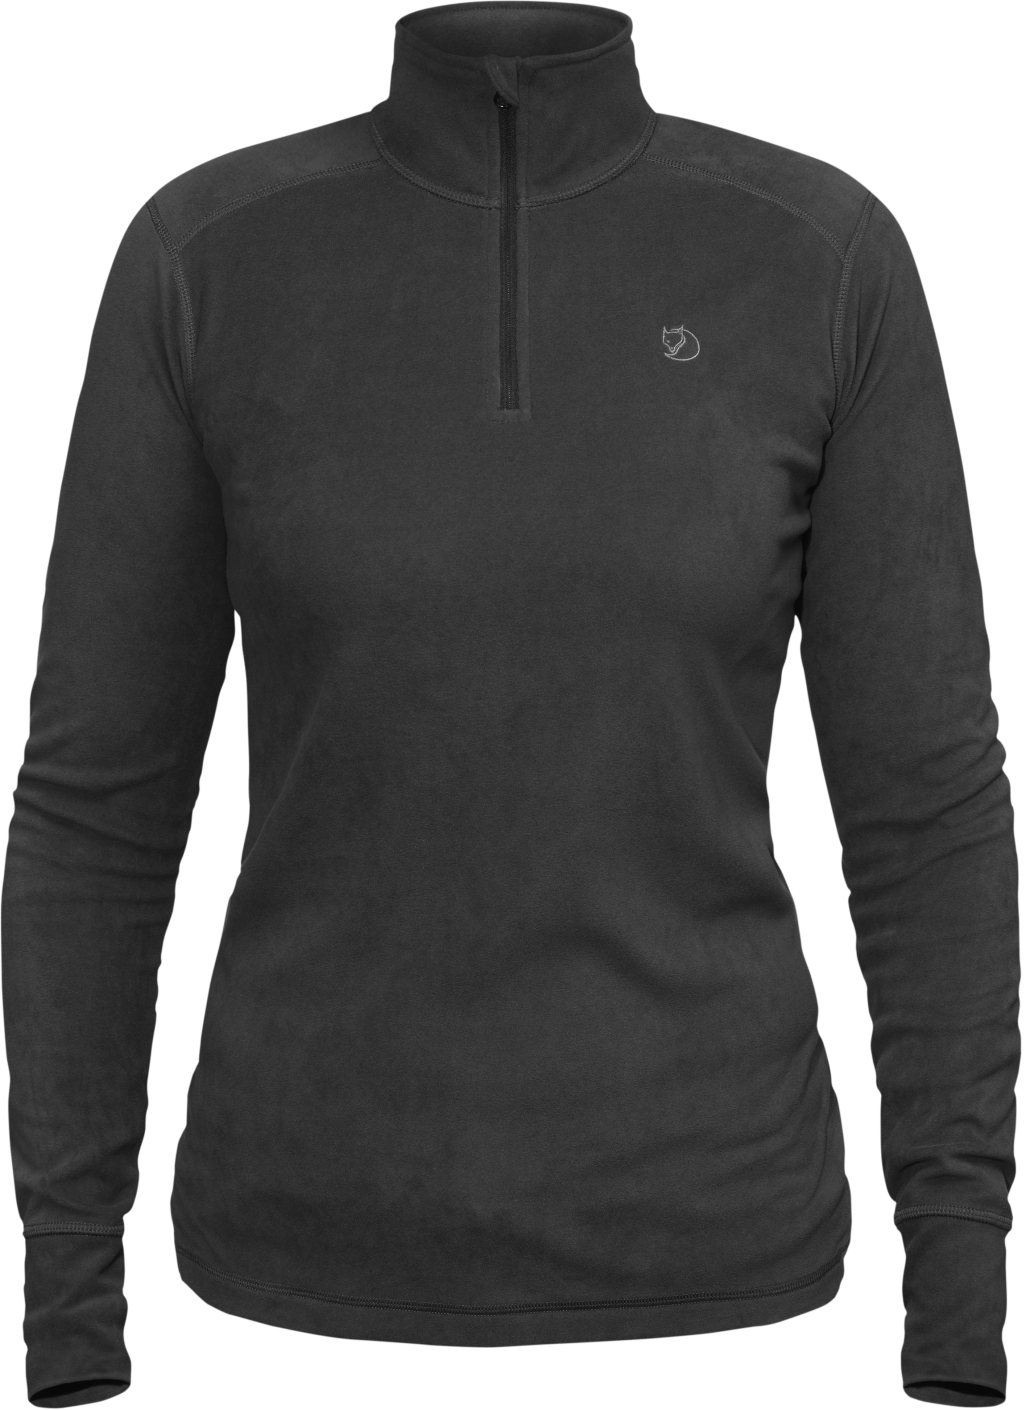 FjallRaven Skare Half Zip Dark Grey-30